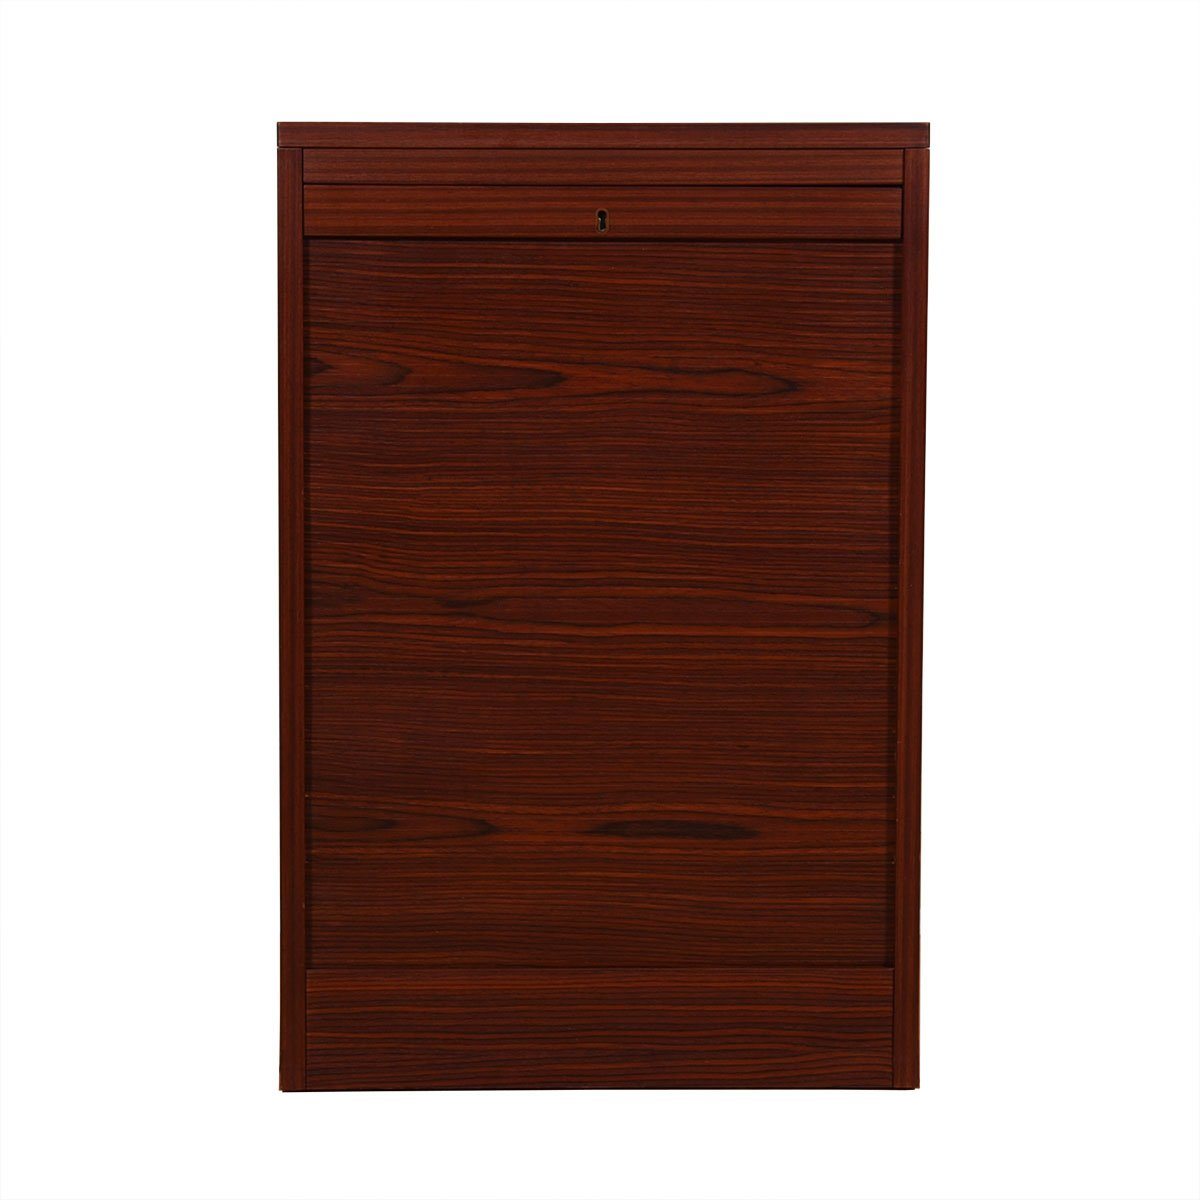 Petite Danish Modern Rosewood Locking Tambour Door Filing Cabinet